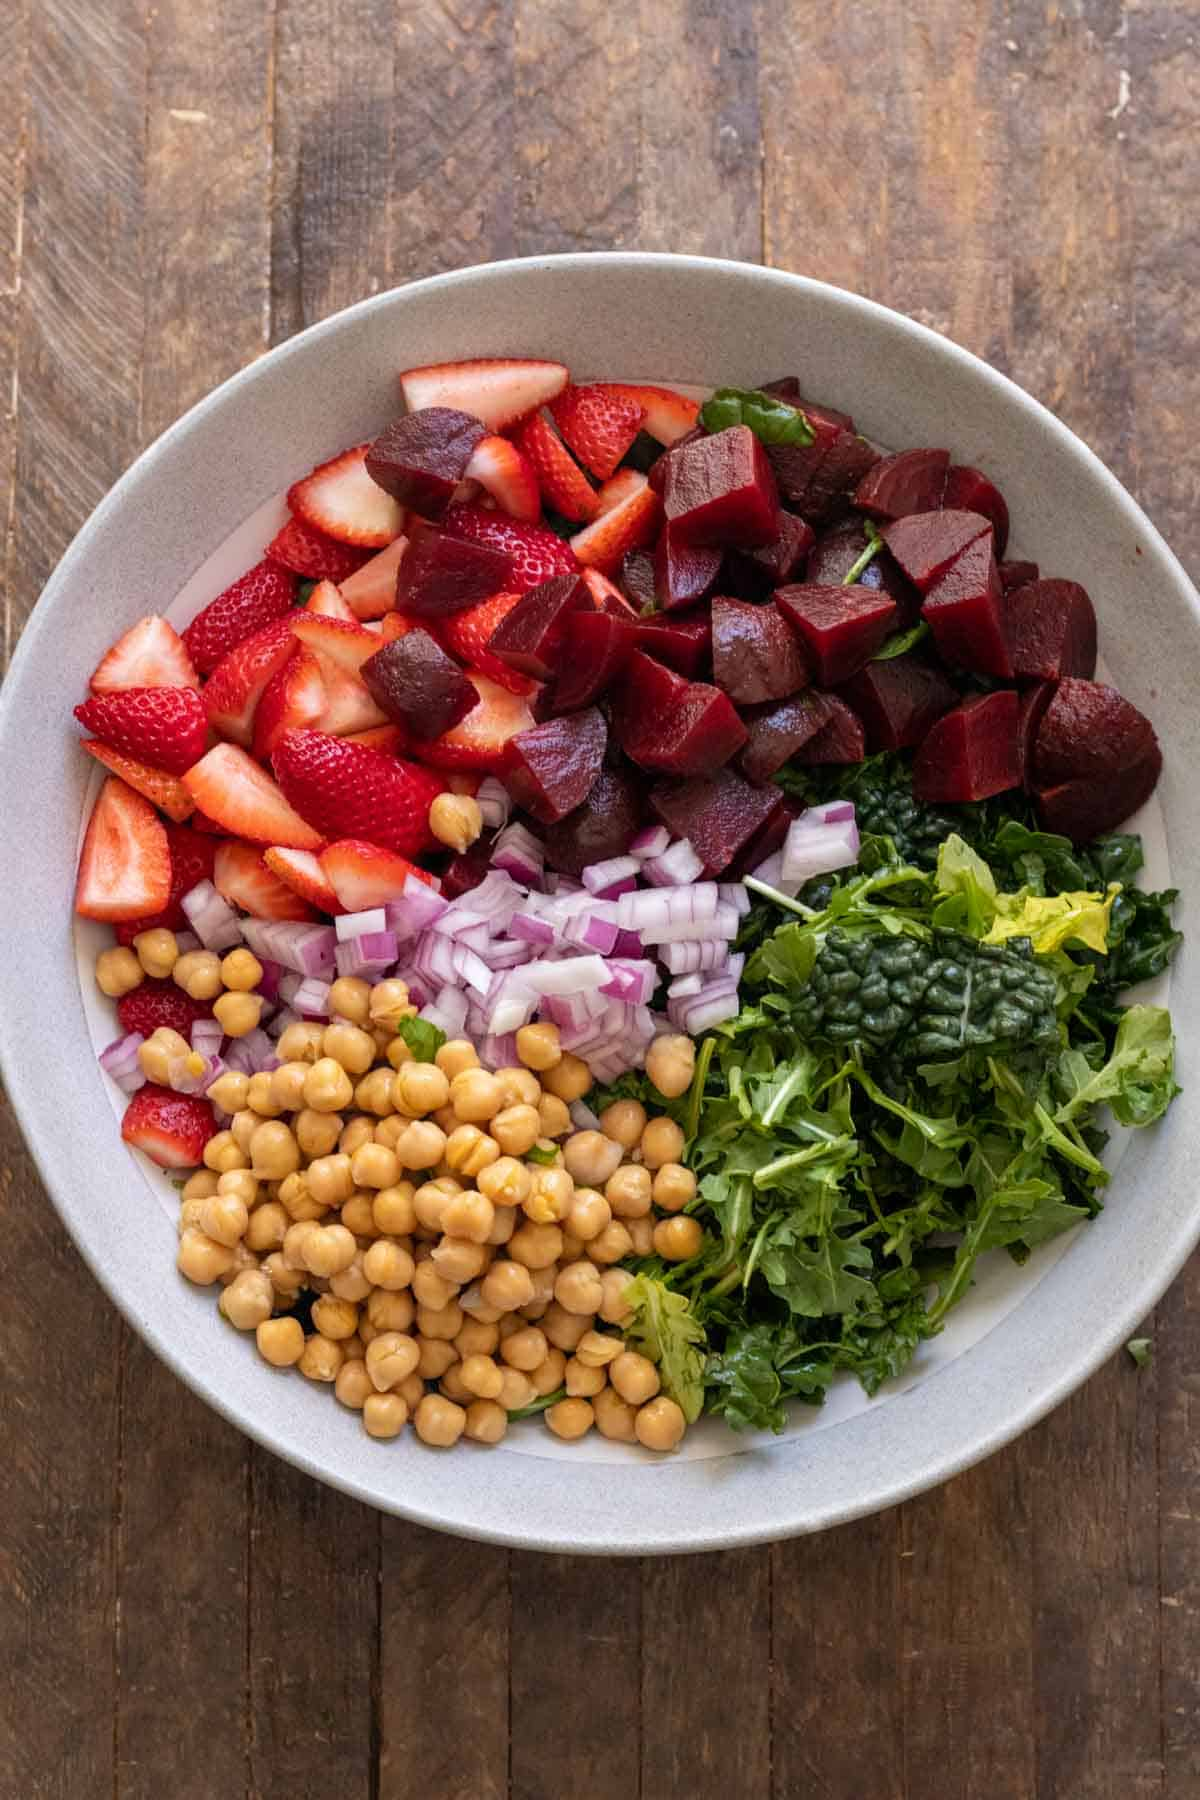 Salad ingredients layered in bowl before tossing together.